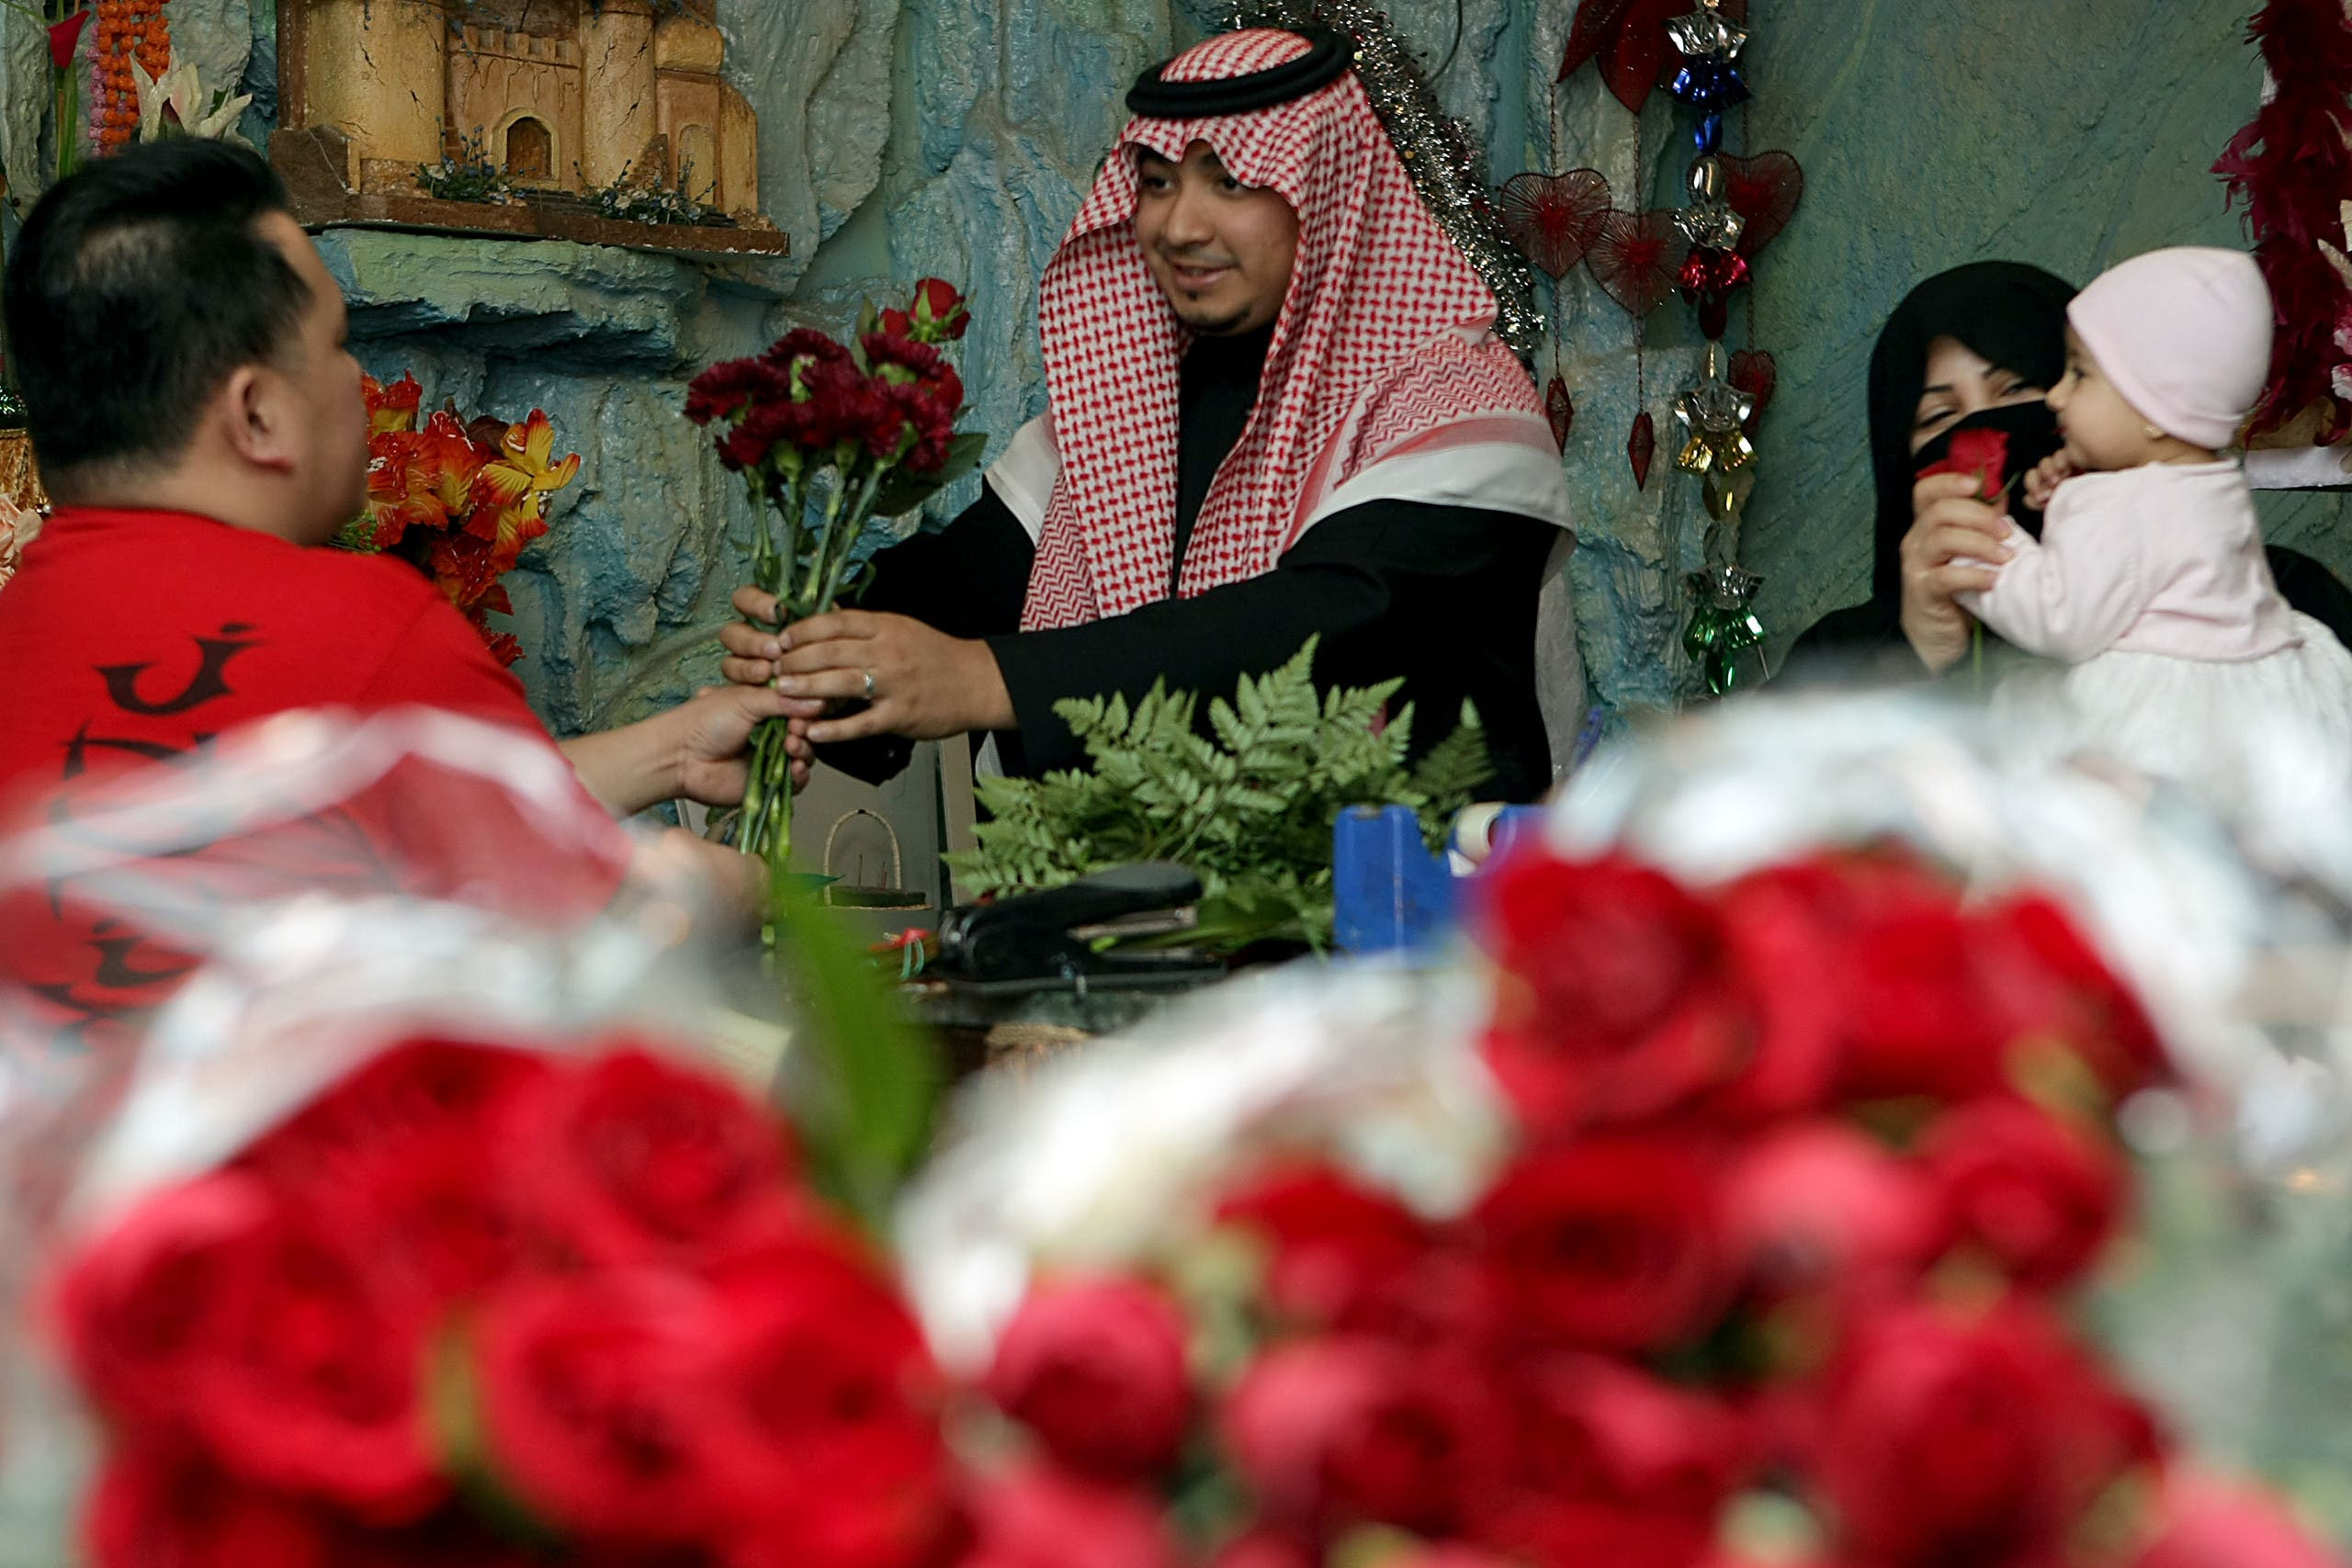 A Saudi man buys red roses for his wife at a flower shop in Riyadh on the eve of Valentine's Day on February 13, 2009. (AFP)